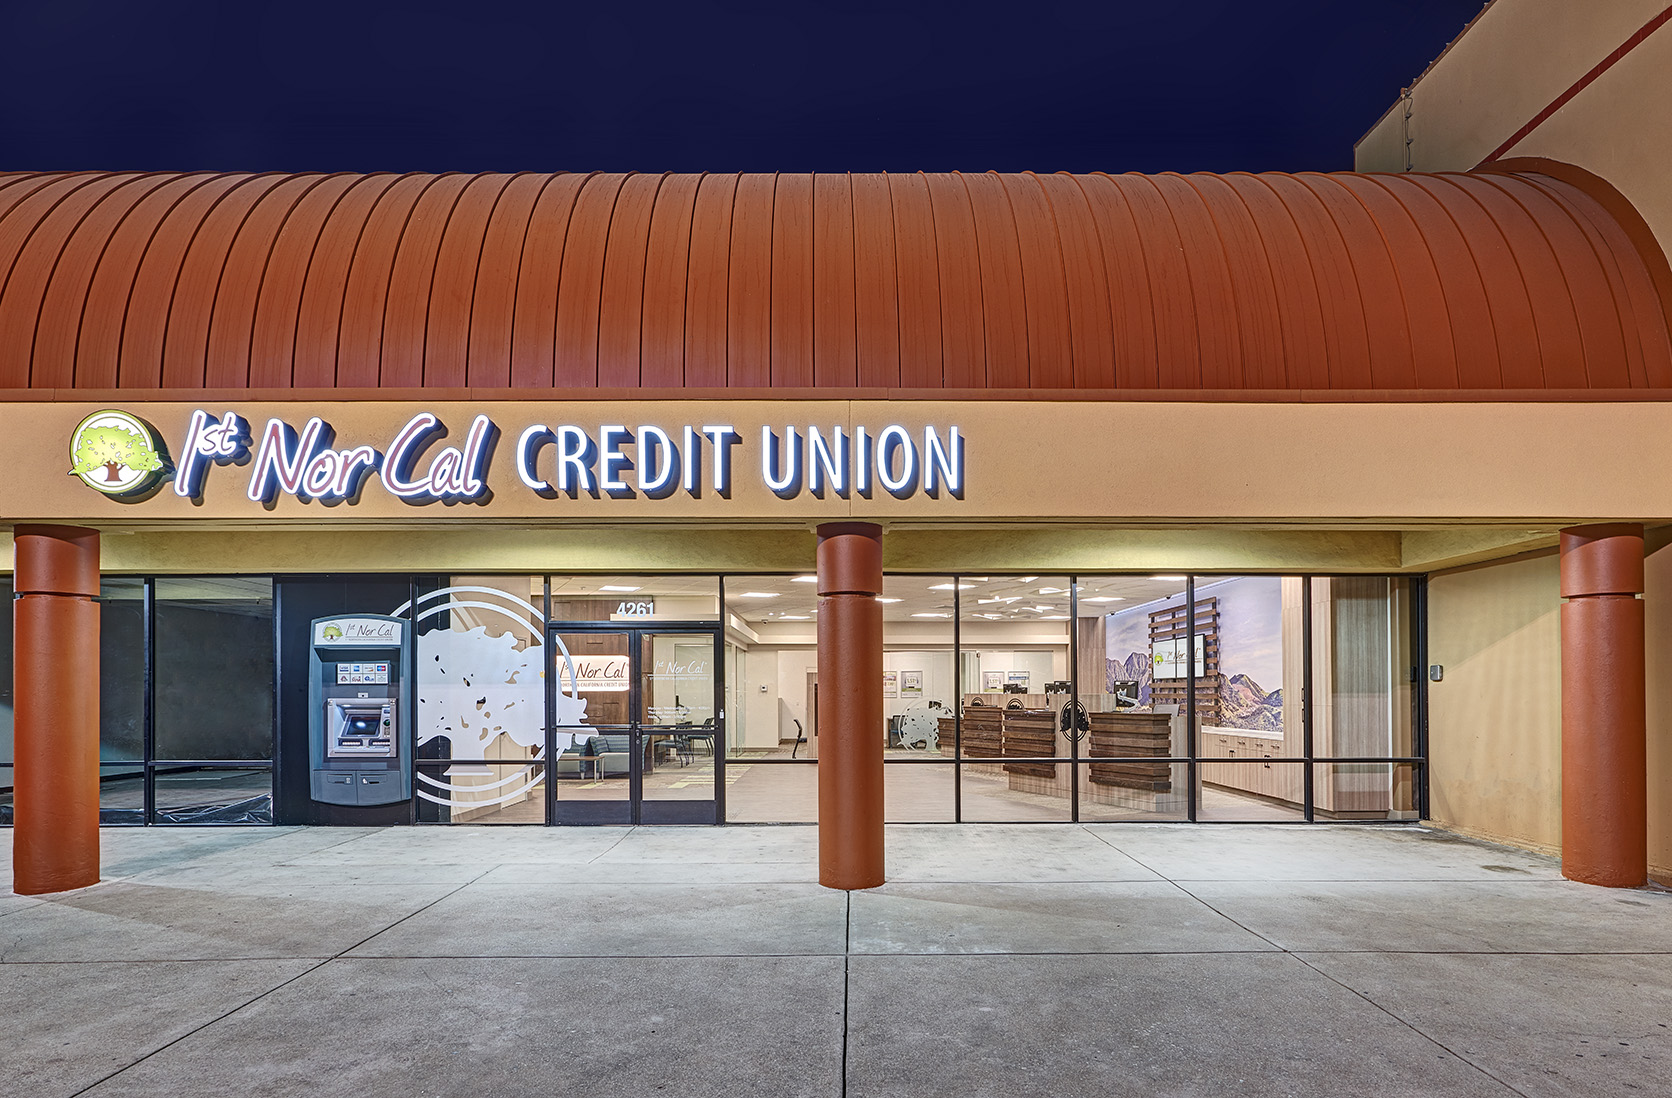 1st-northern-california-credit-union---pittsburgfeee1ea70afc6fa7a420ff0000a61ca0